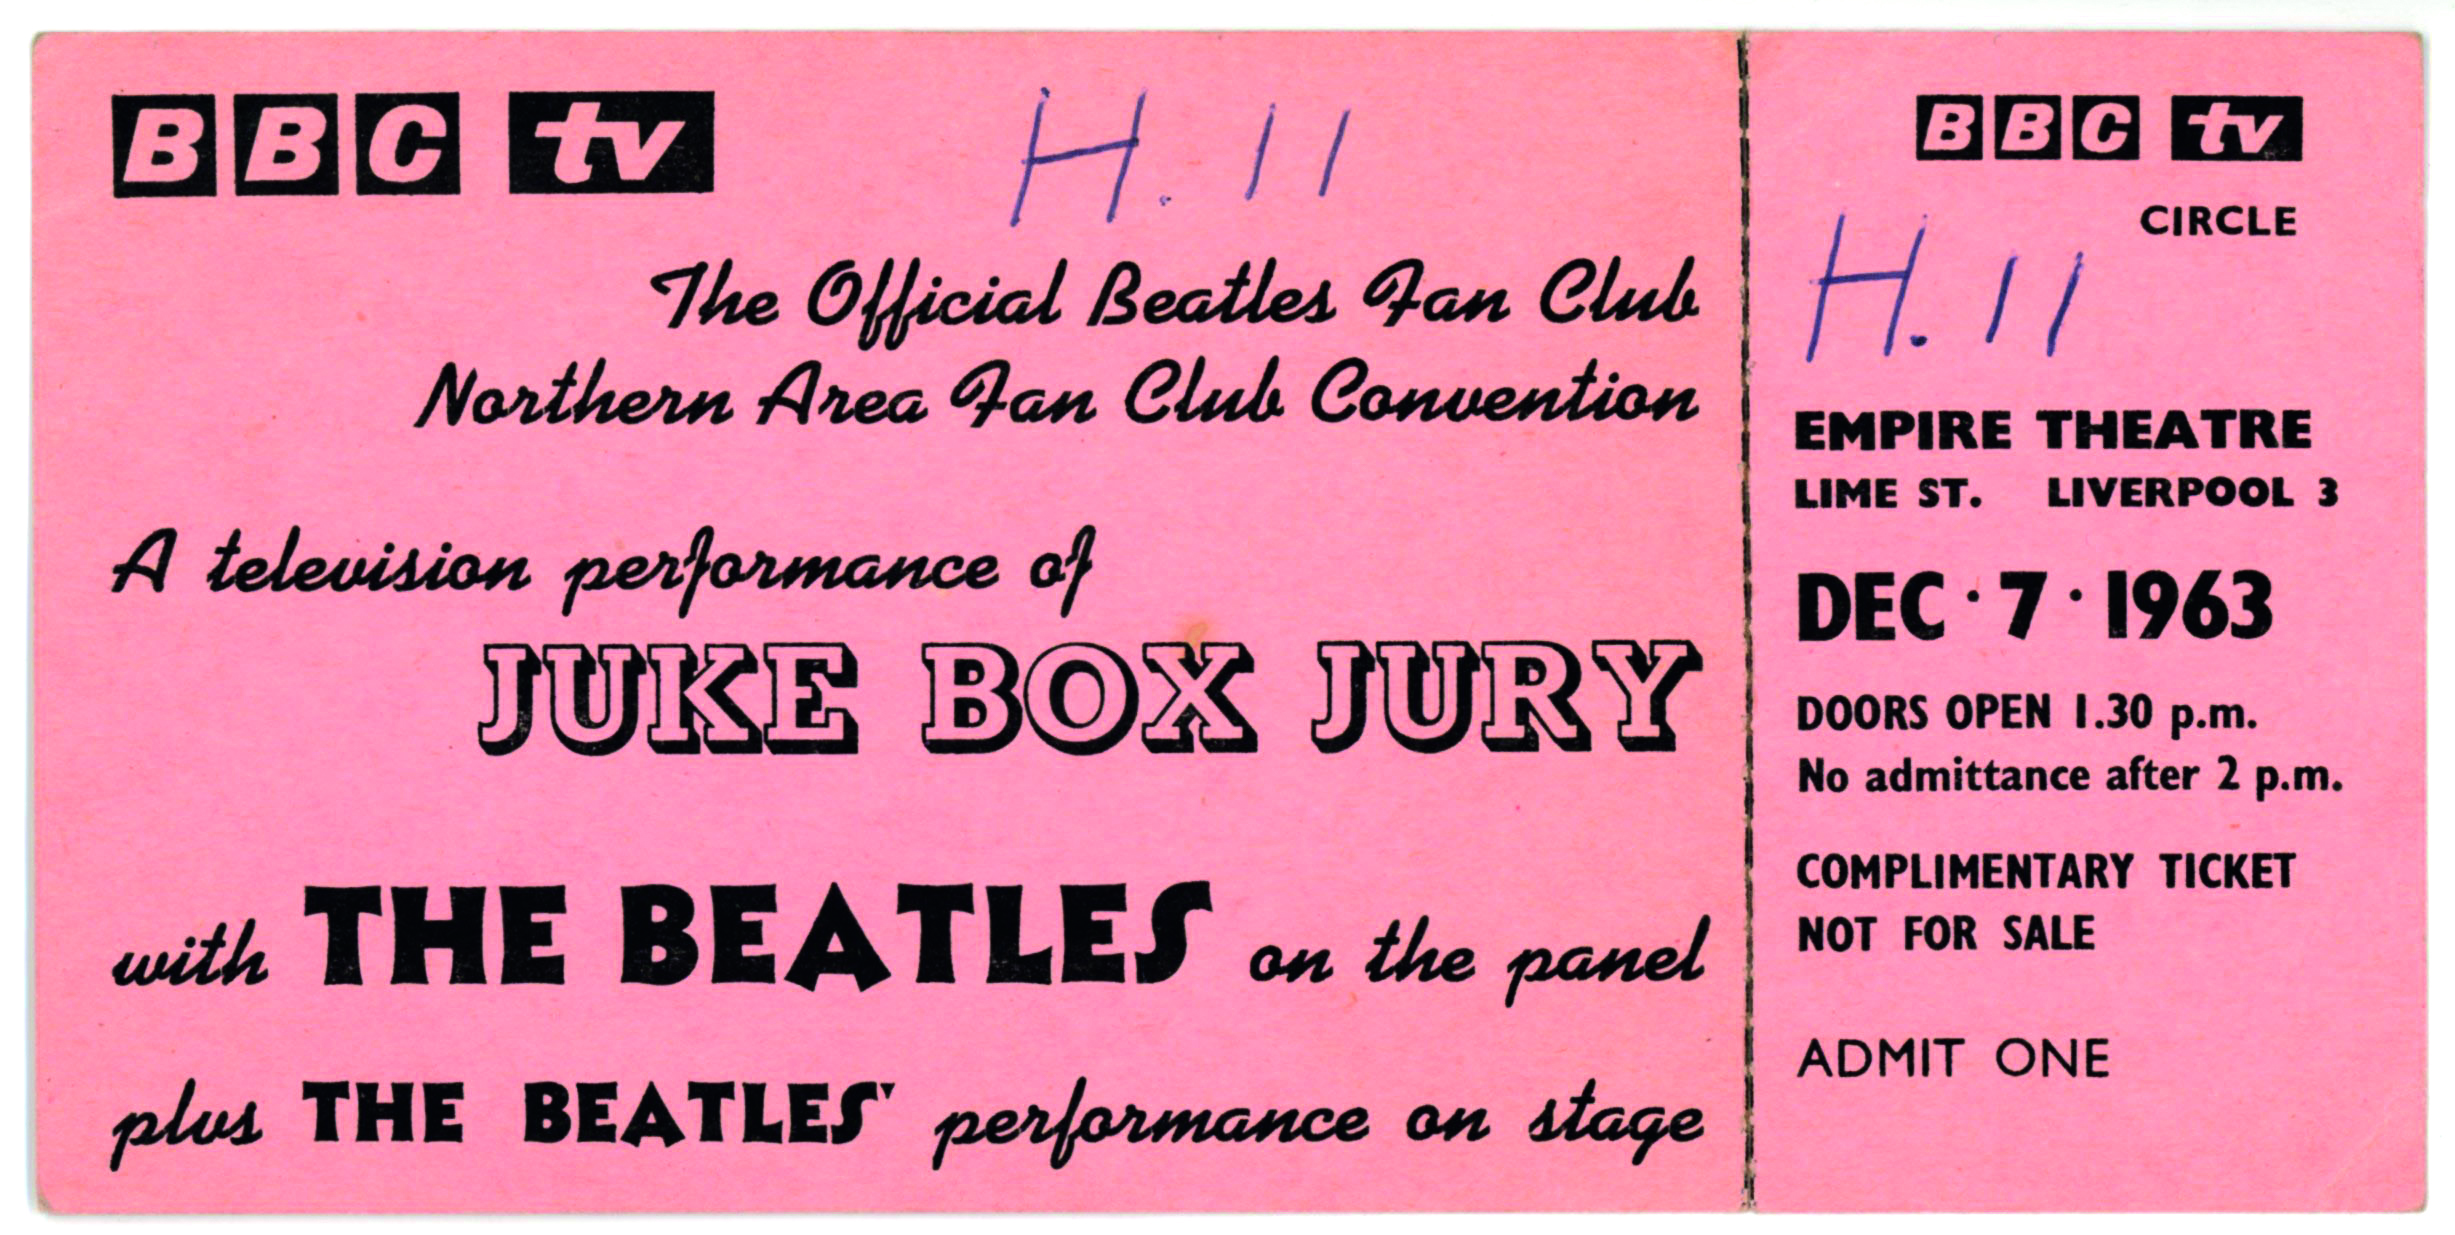 A ticket to see The Beatles on BBC1's Juke Box Jury at the Empire Theatre.